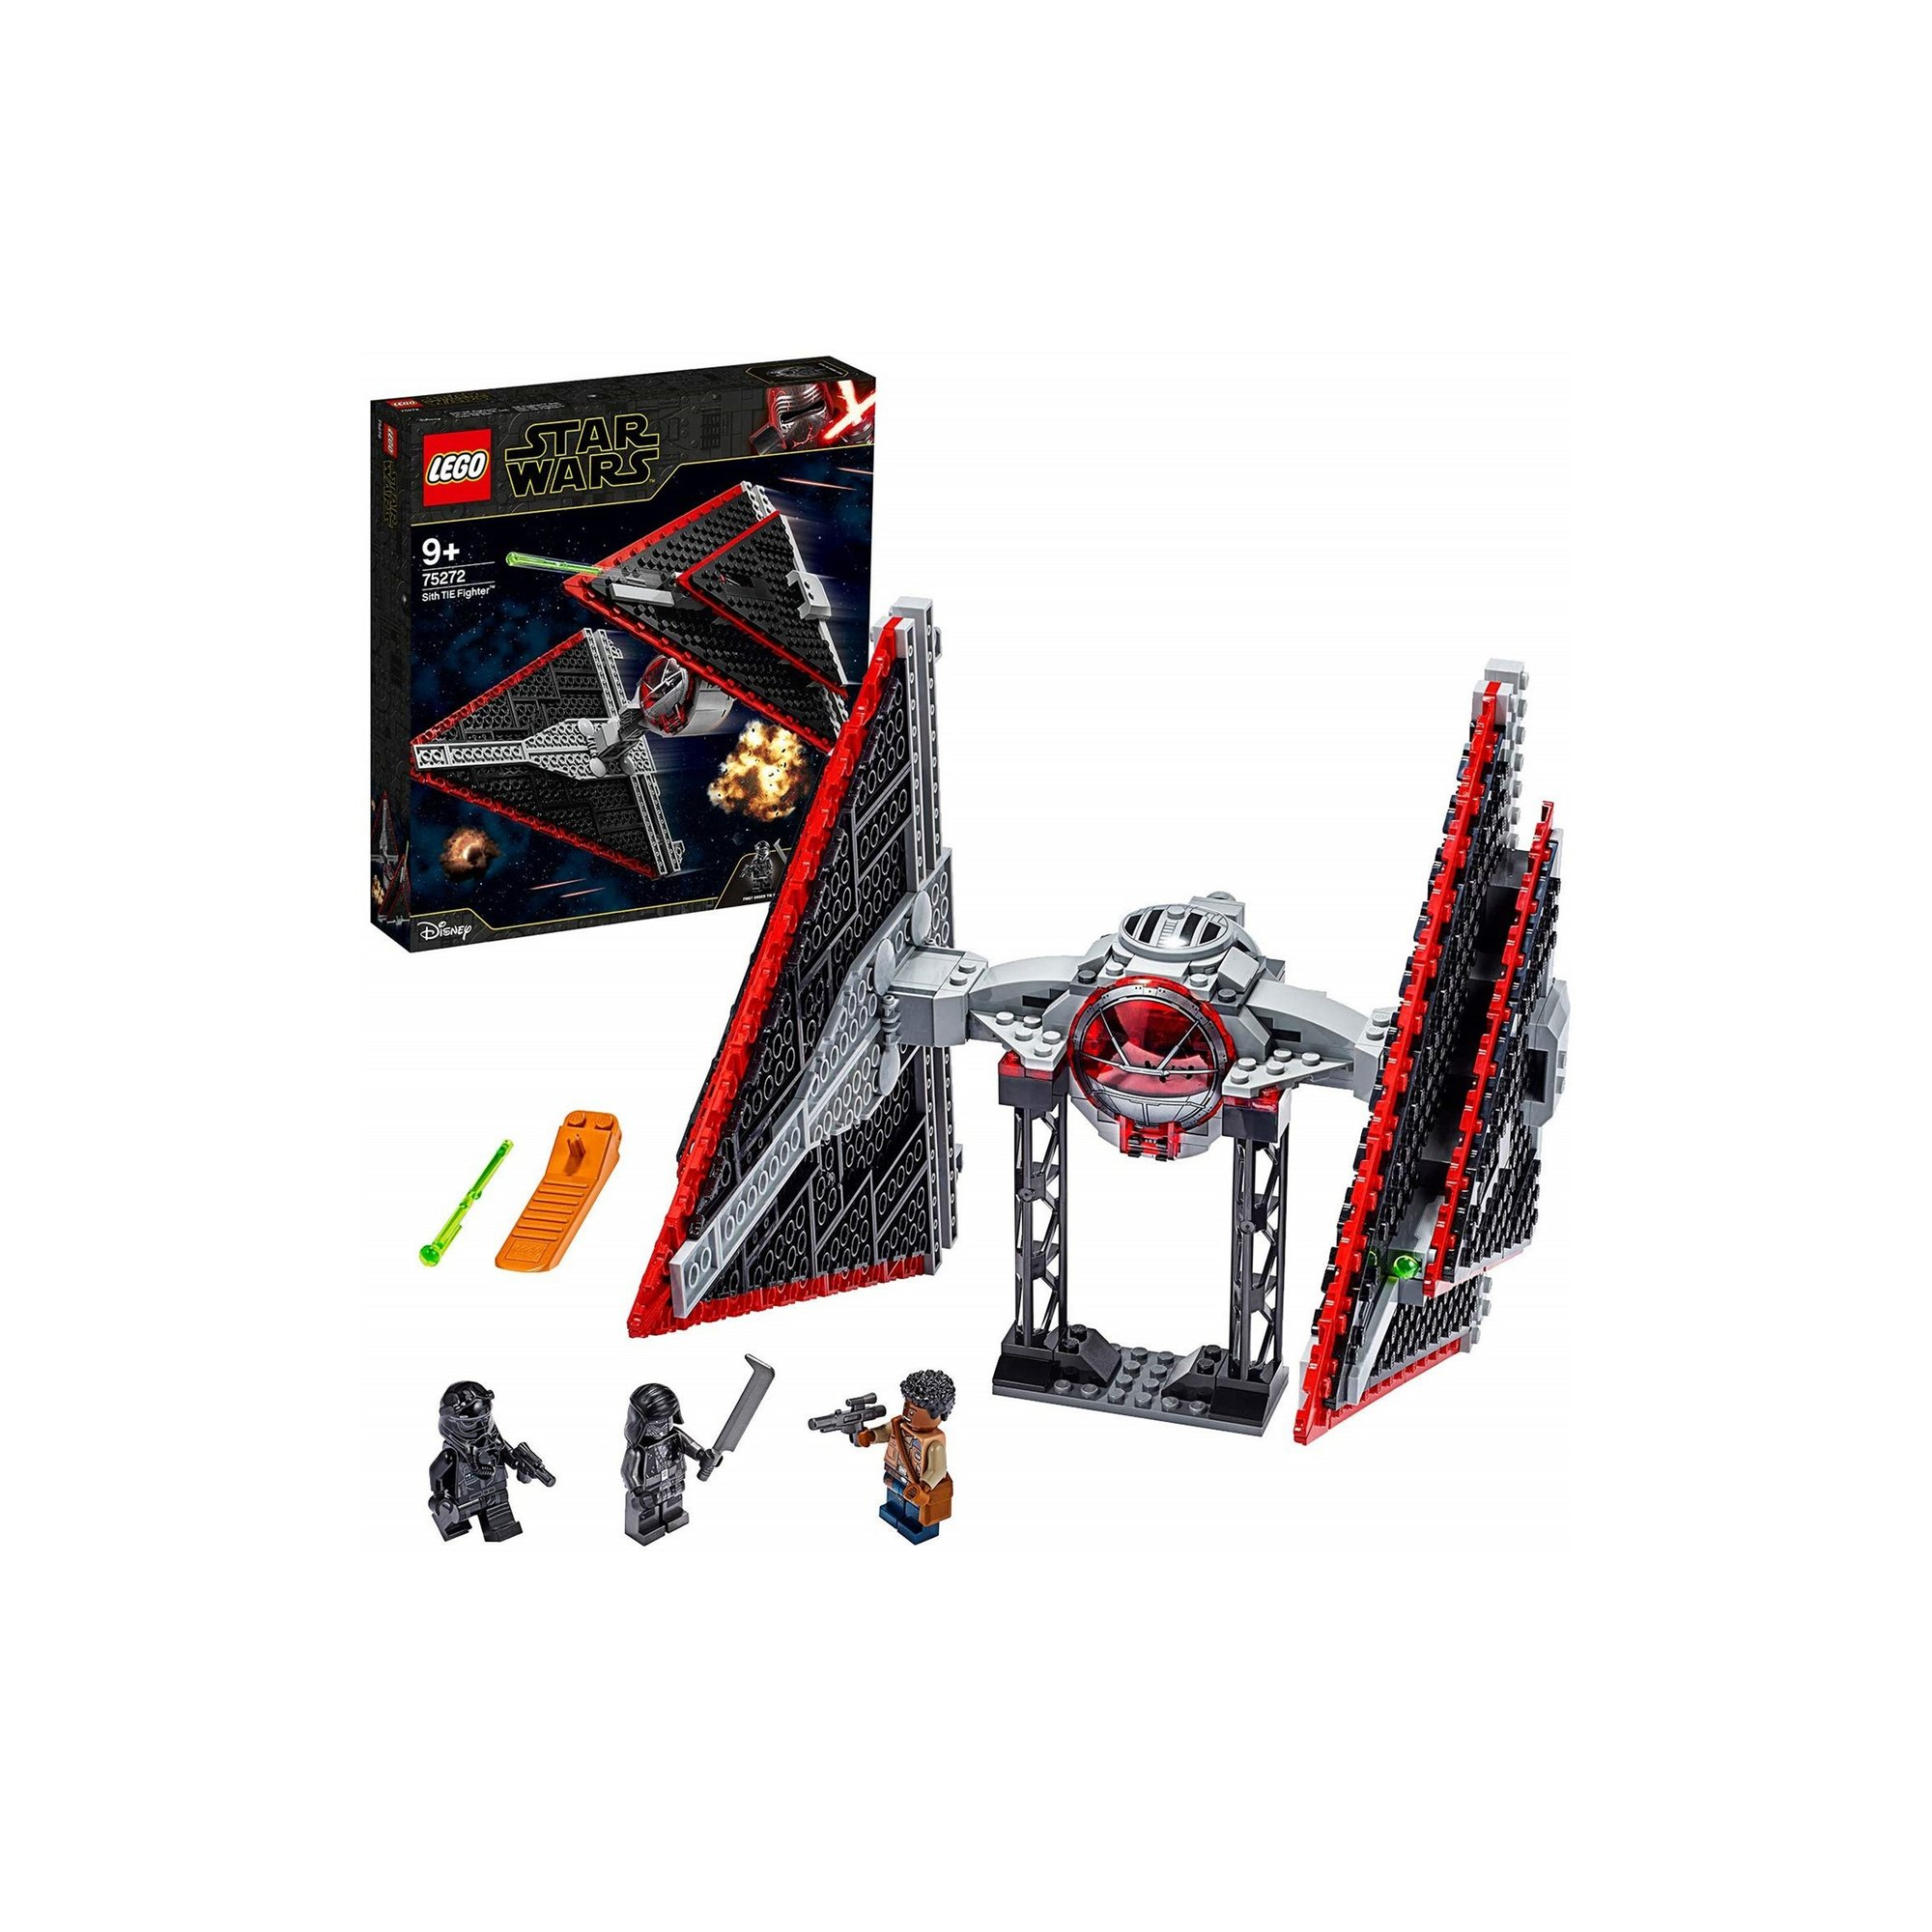 Image of LEGO Star Wars Sith TIE Fighter